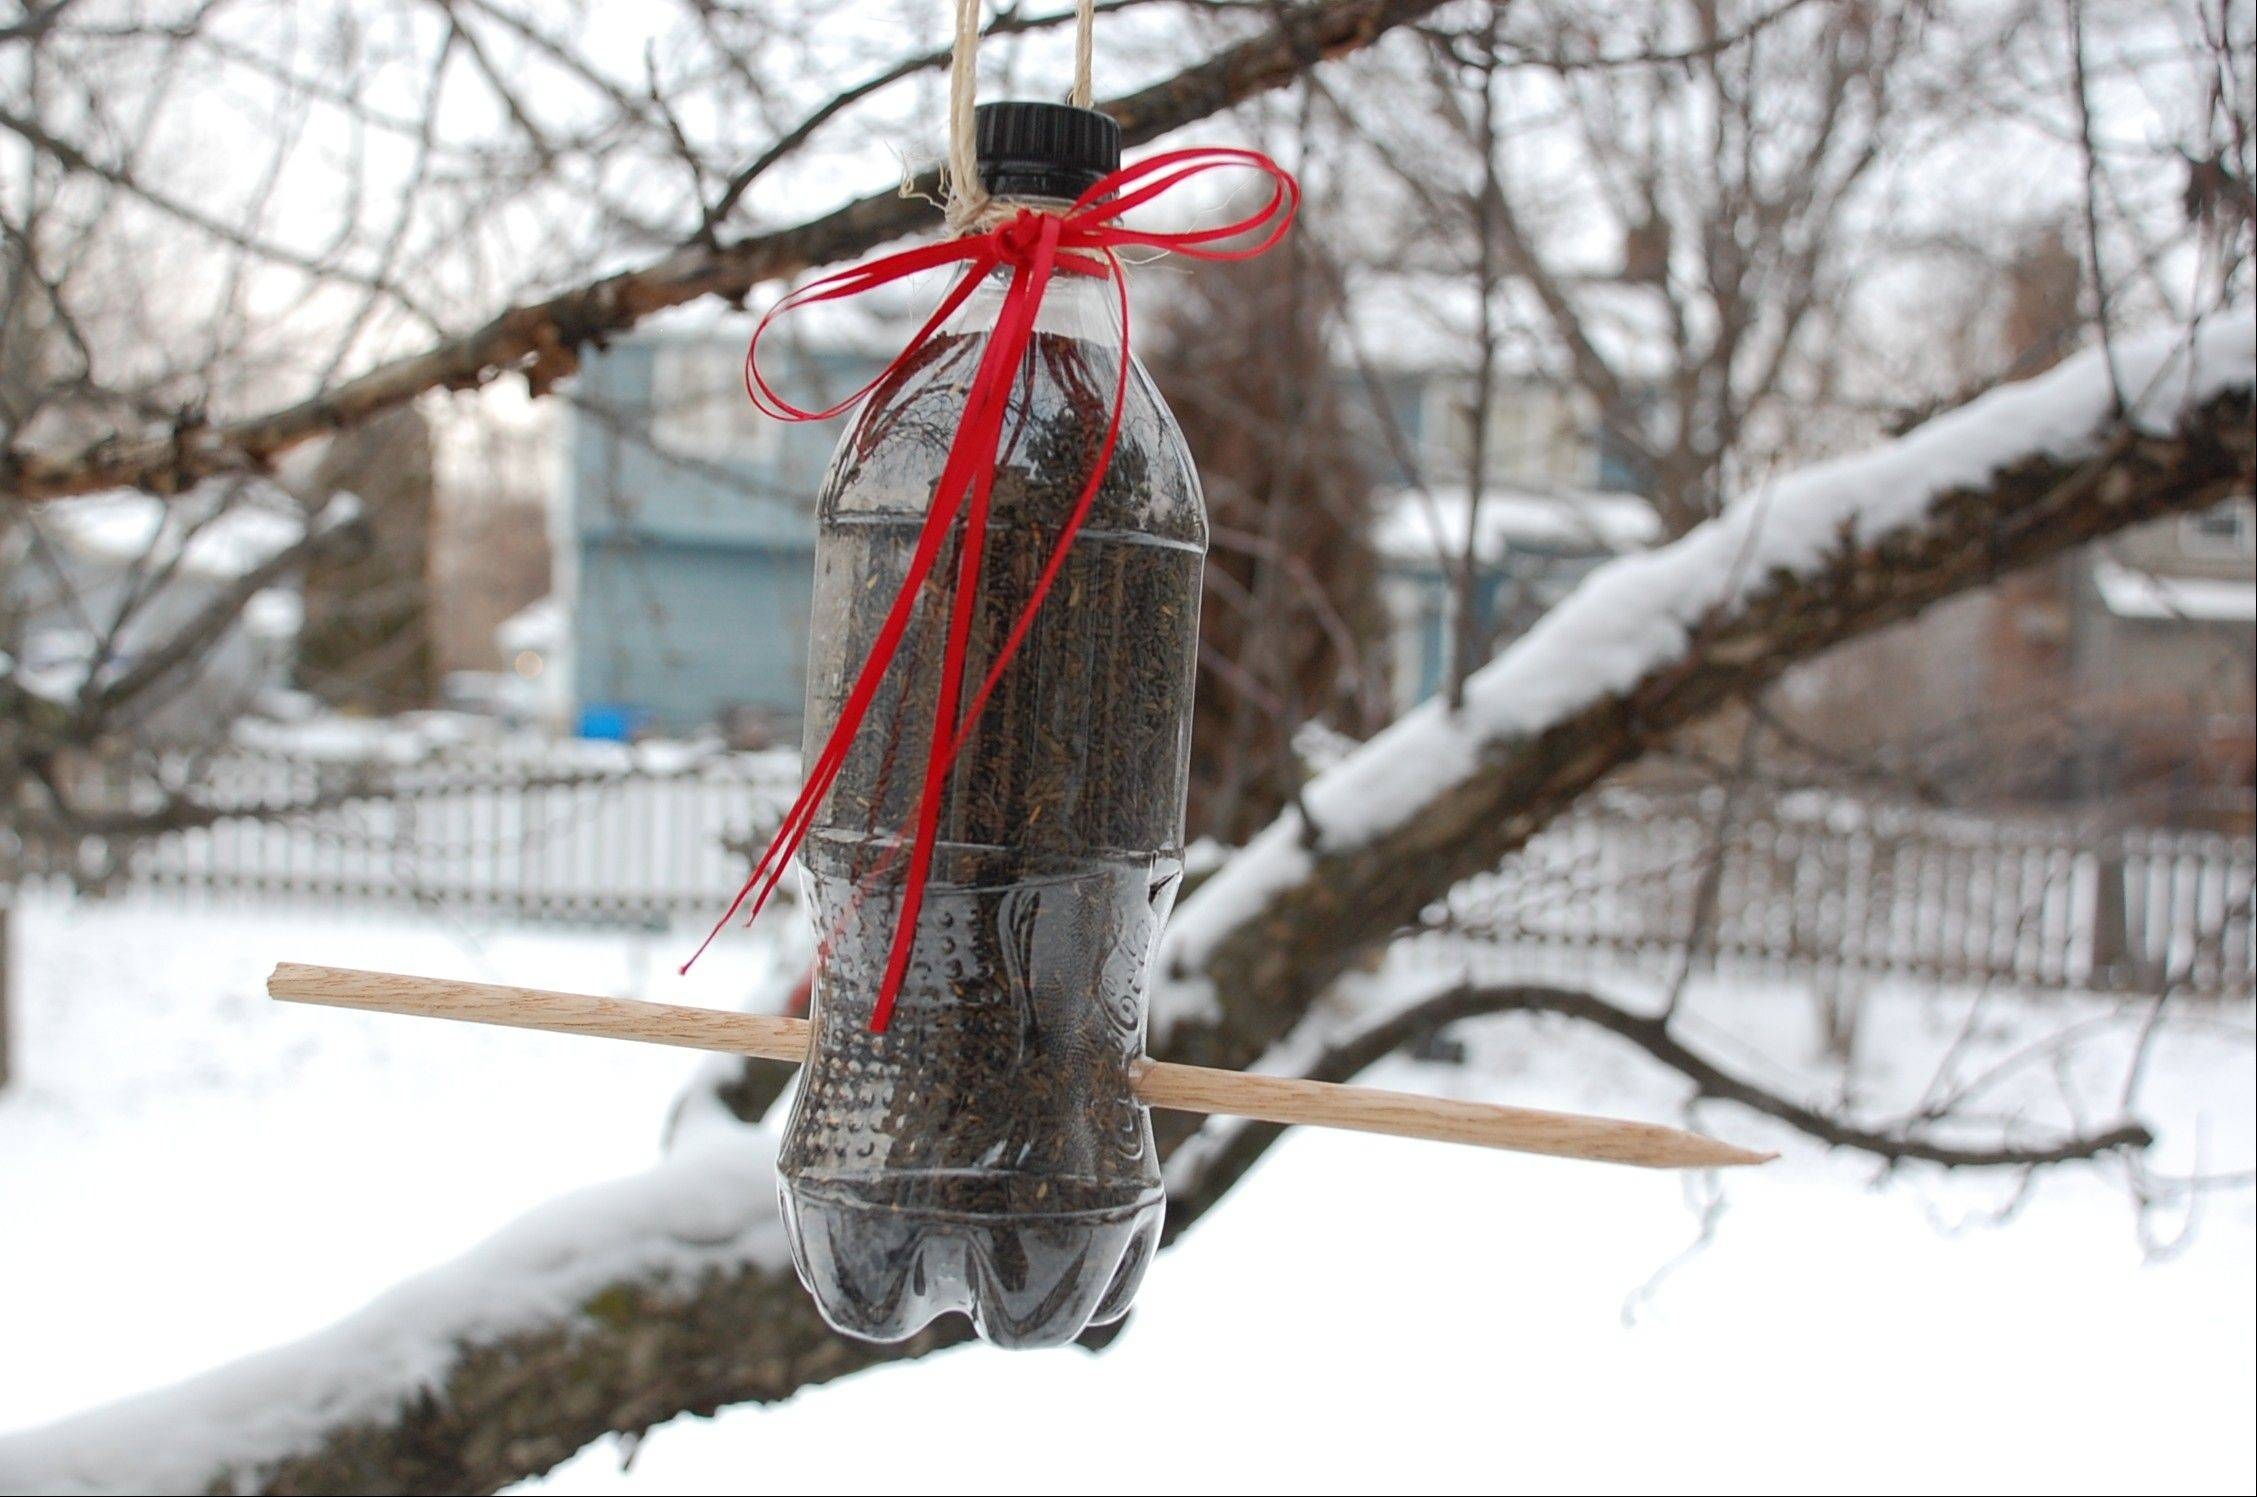 With a few craft supplies, you can create a bird feeder and attract a little wildlife to your backyard.